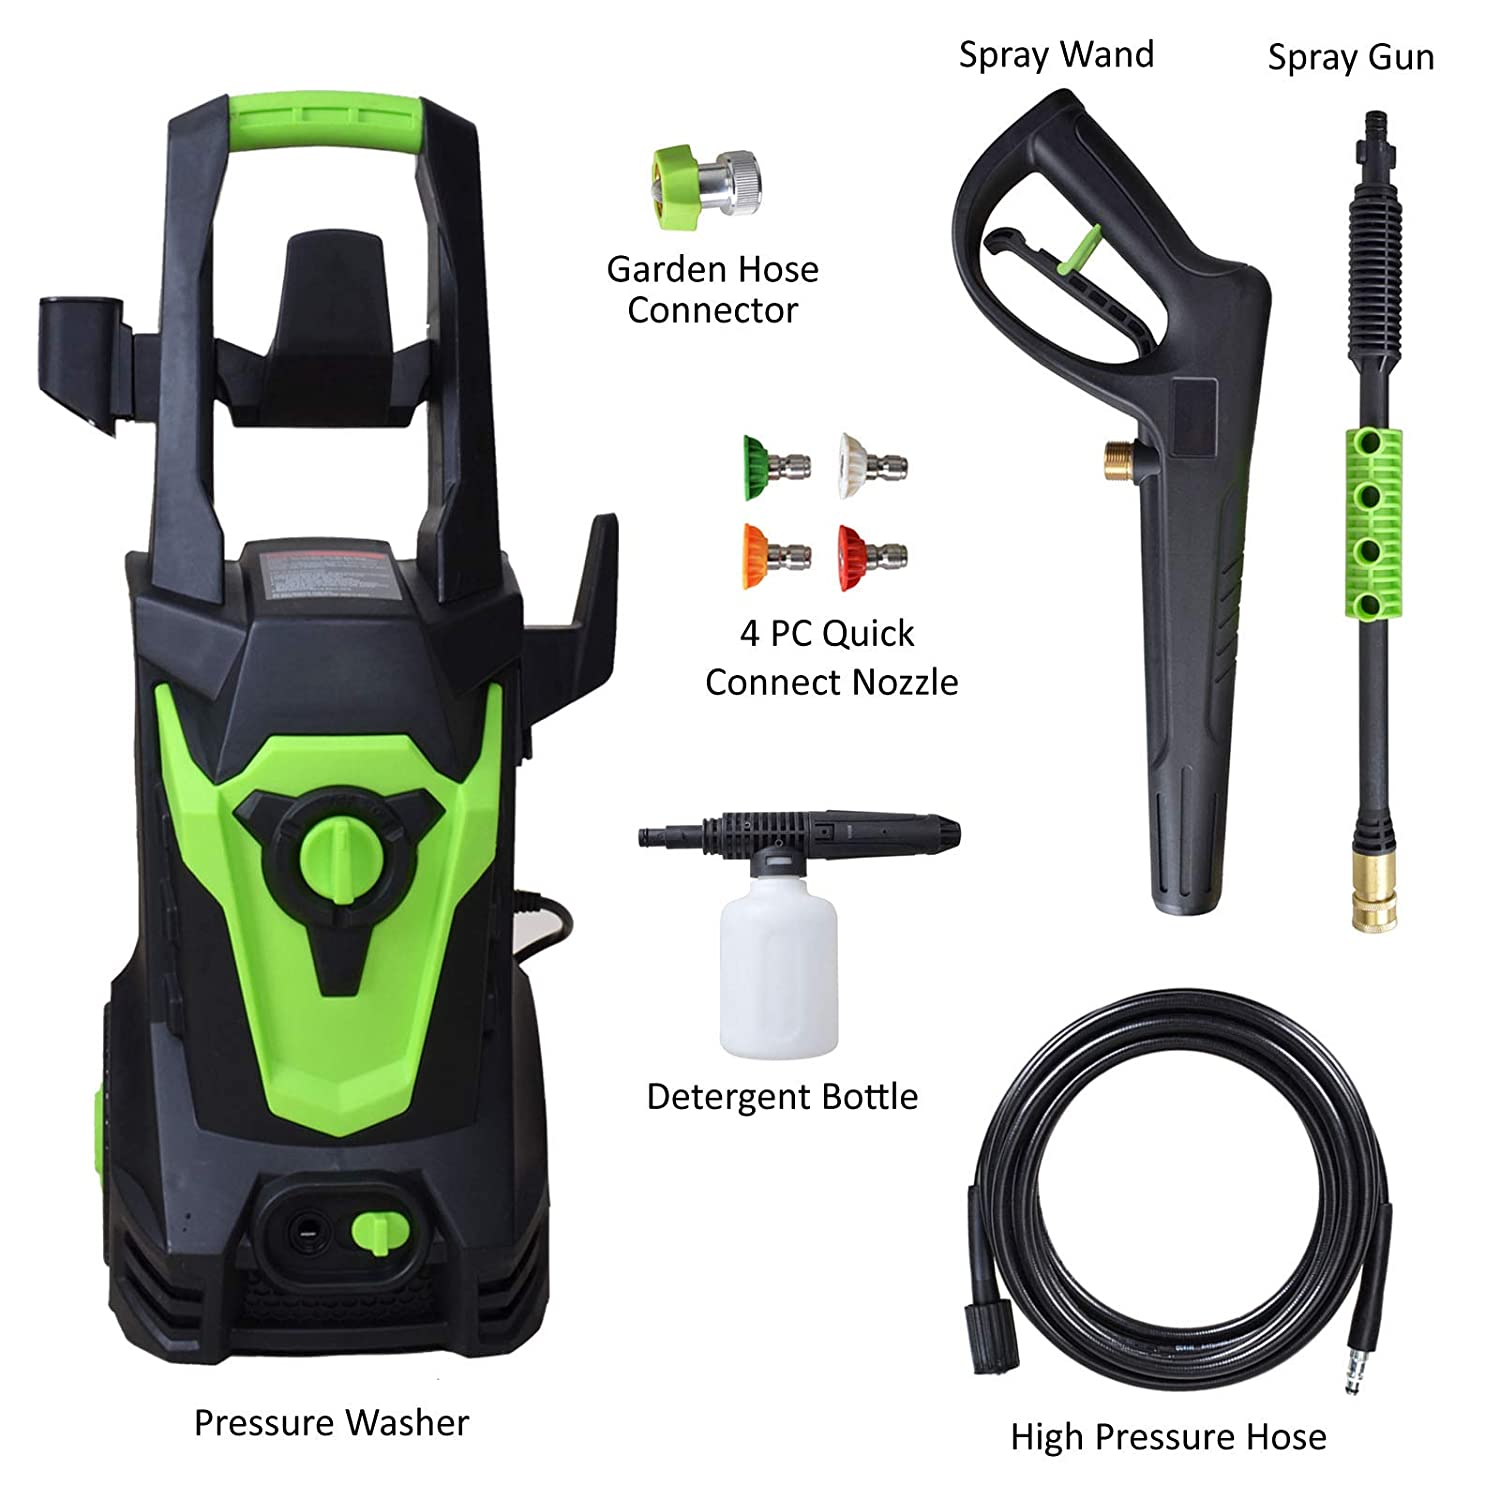 High Power Cleaner with Copper Garden Hose Connector Indigano 3800PSI 2.6GPM Electric Pressure Washer with 4 Spray Tips Washing Machine with Heating Protector